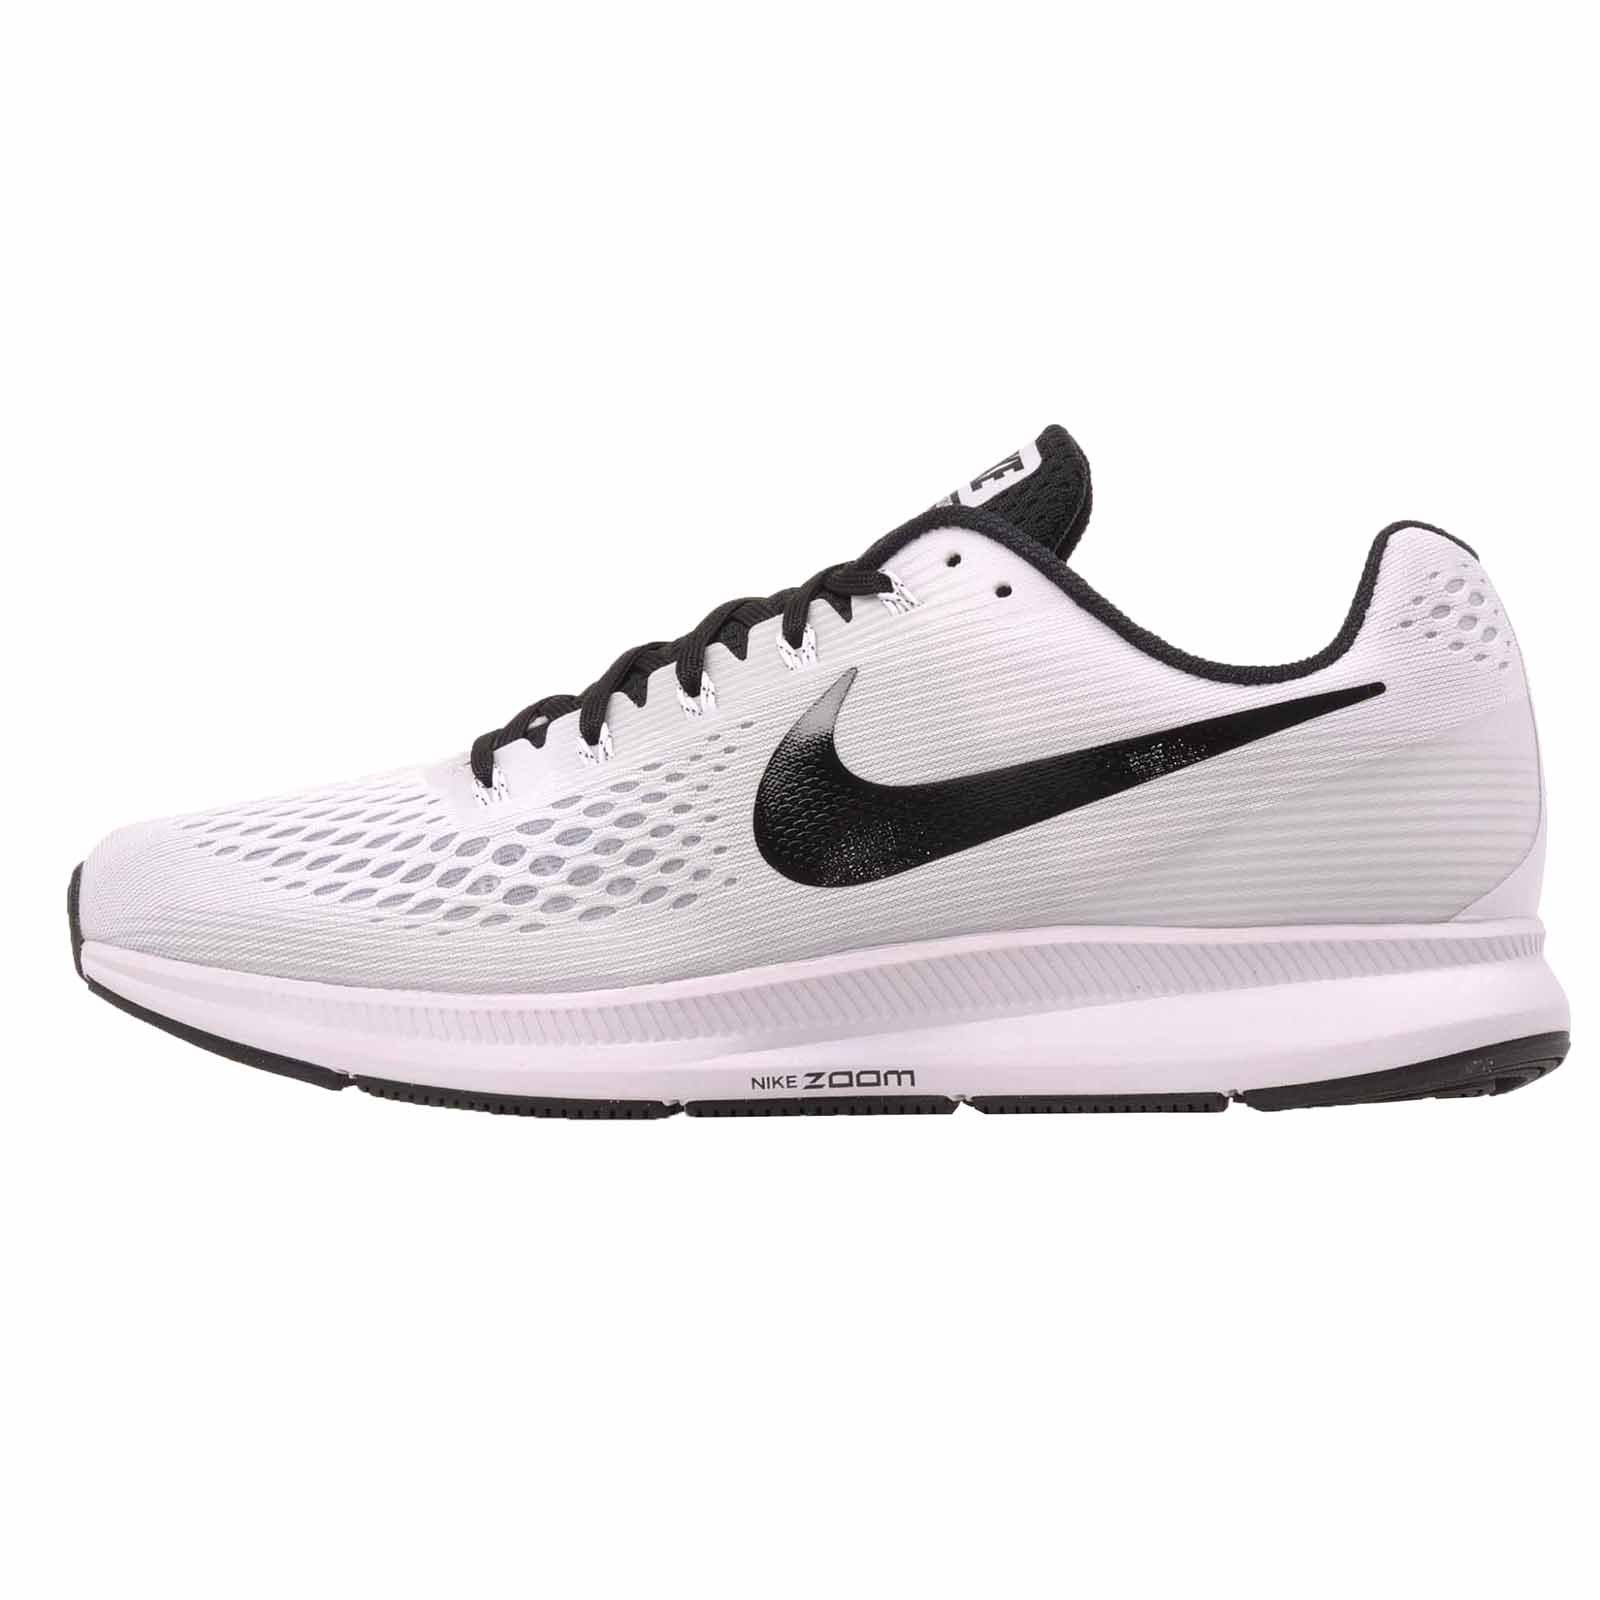 4f7c92a88e4f Galleon - Nike Men s Air Zoom Pegasus 34 TB